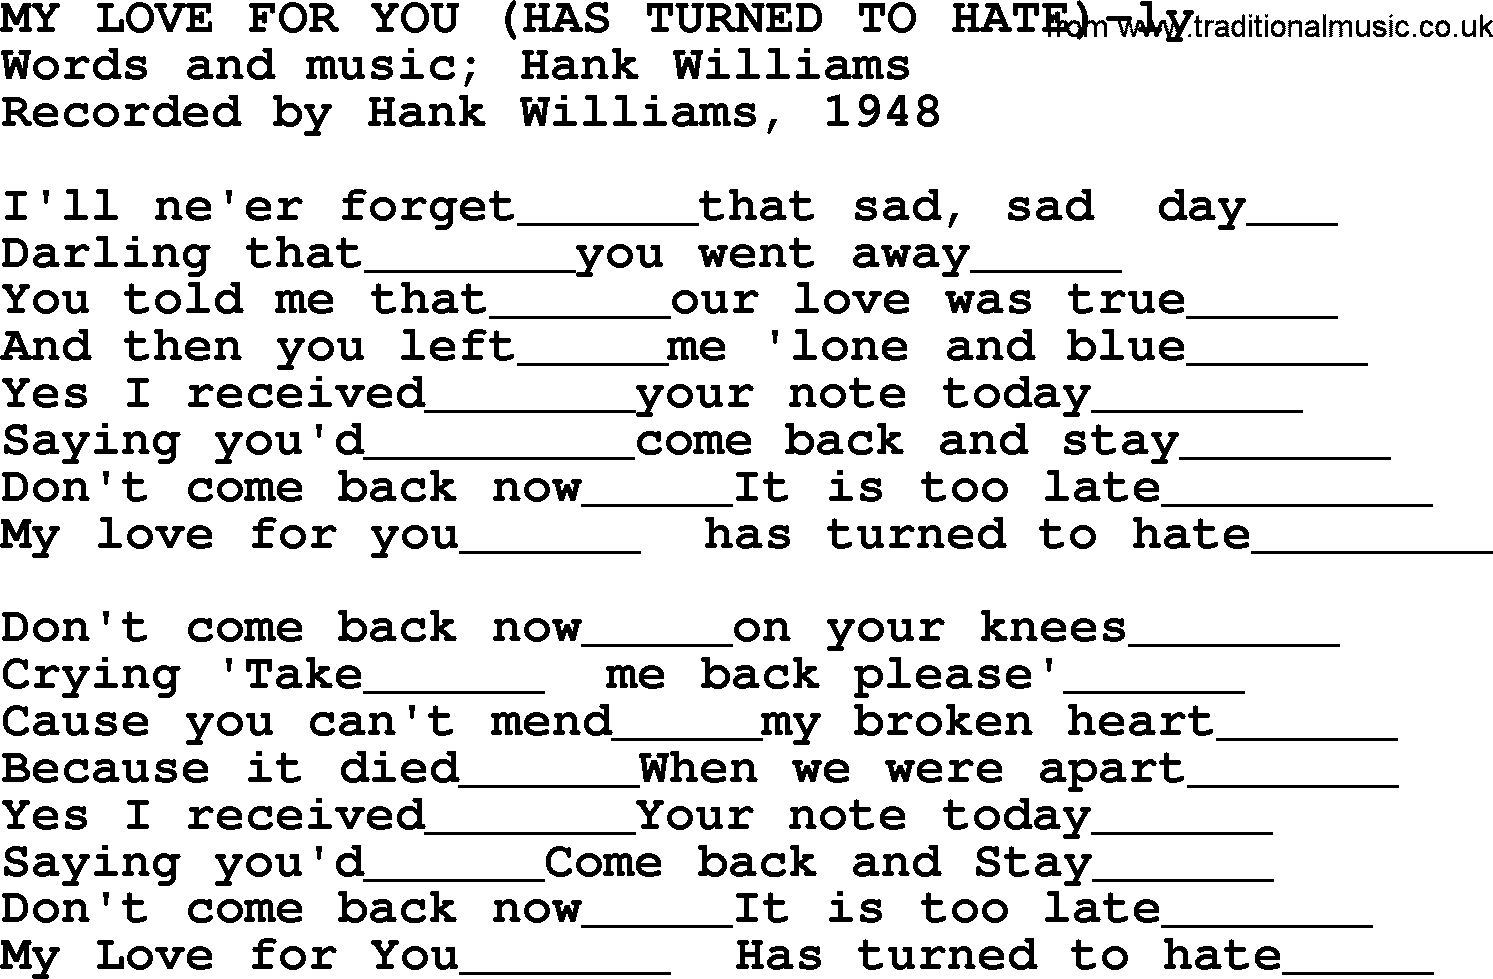 Hank Williams Song My Love For You Has Turned To Hate Lyrics